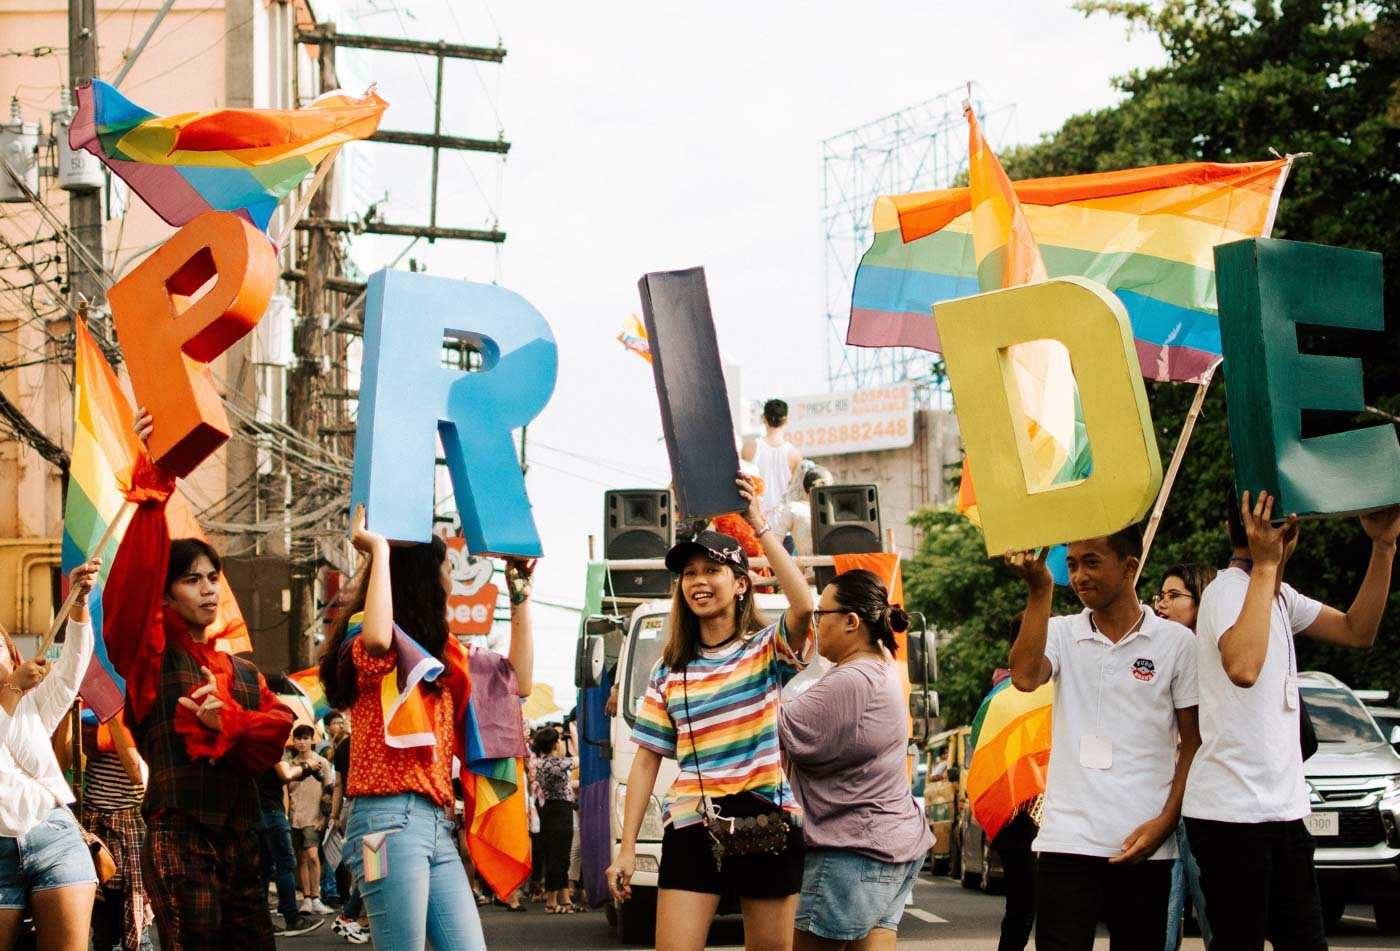 PRIDE MARCH. LGBTQ+ youth and allies unite in a Pride parade in Bacolod City on Saturday, June 22. Photo by Jorge Gamboa